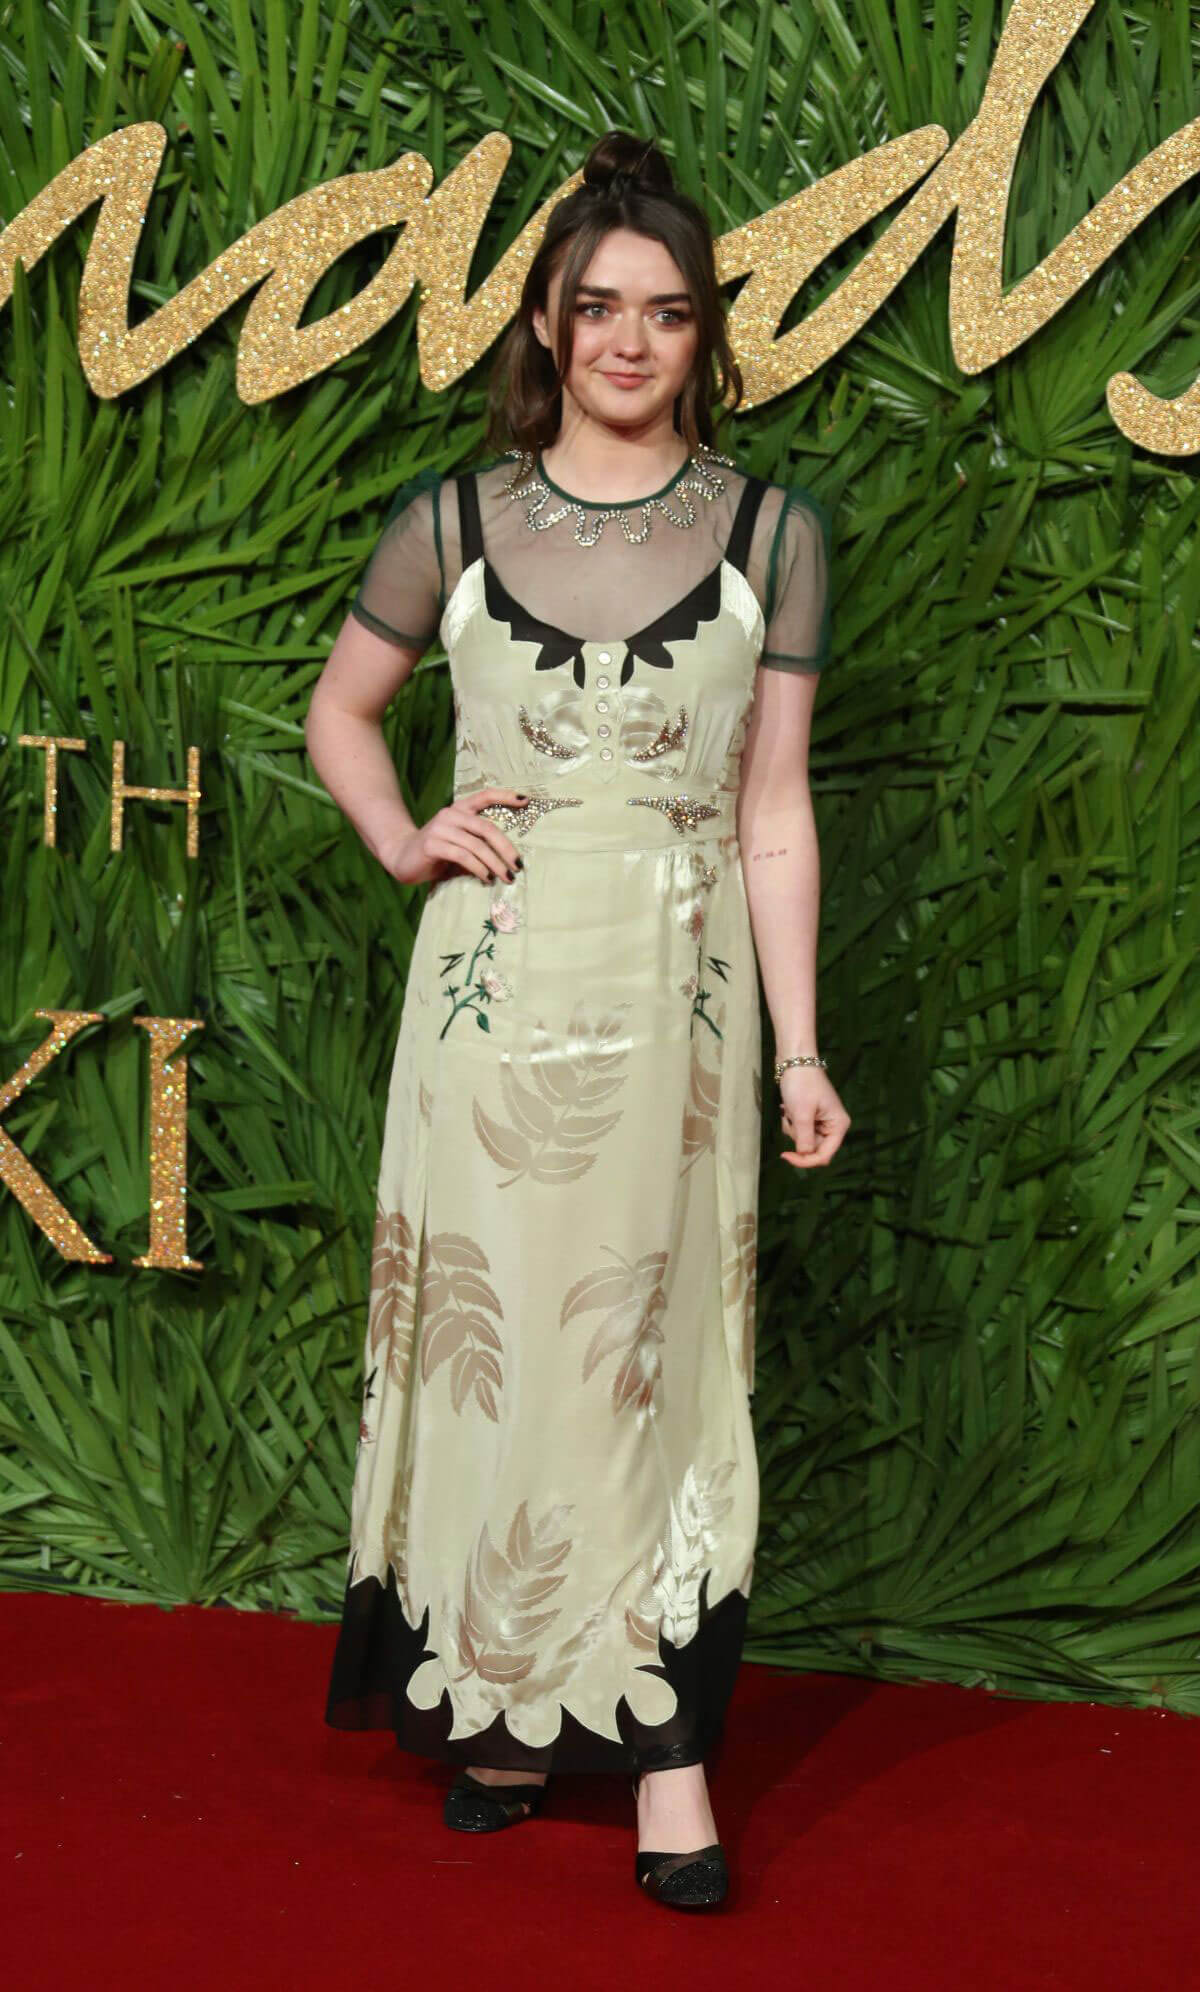 Maisie Williams Stills at Fashion Awards 2017 in London 2017/12/04